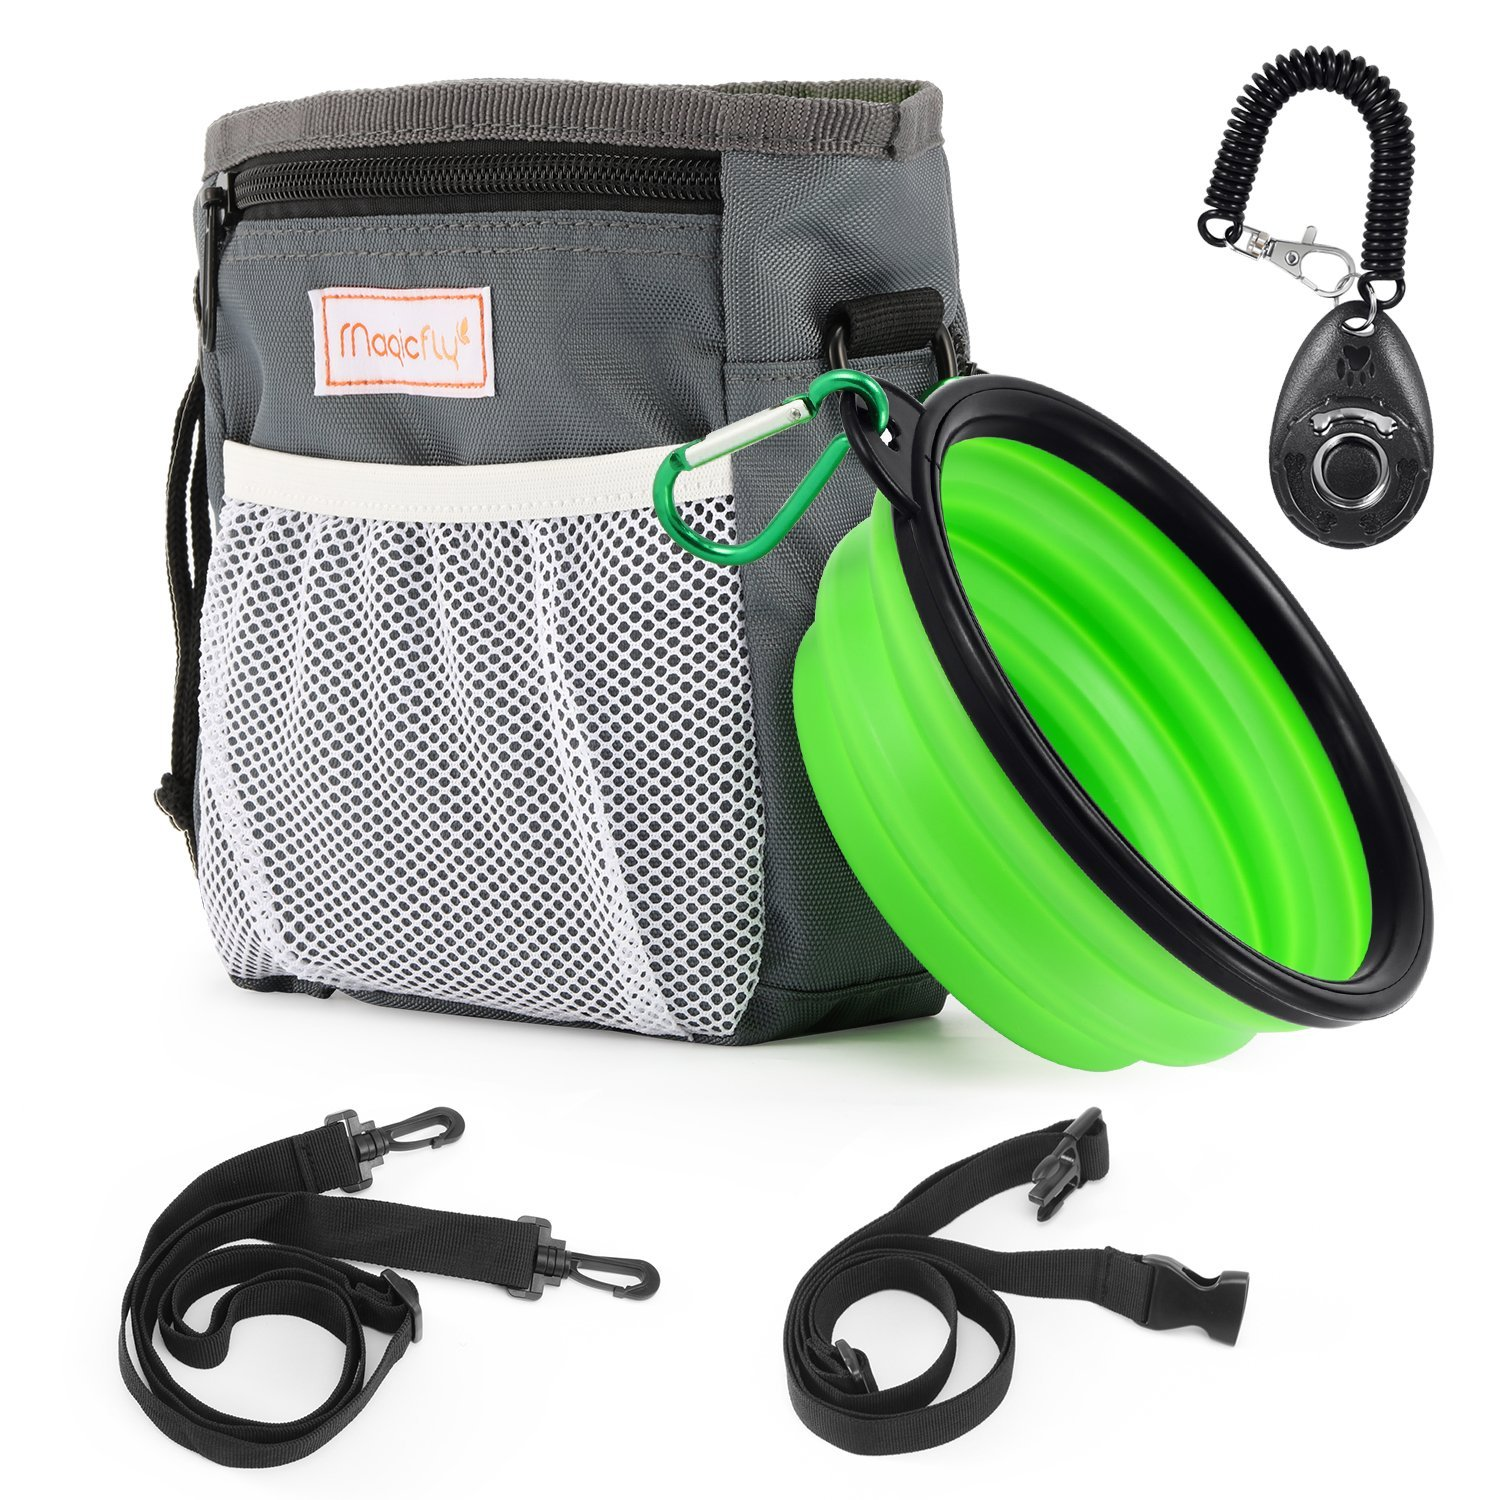 Magicfly Dog Treat Traning Pouch Bag with Collapsible Pet Bowl & Dog Clicker, Adjustable Belt With Dog Treat Pouch